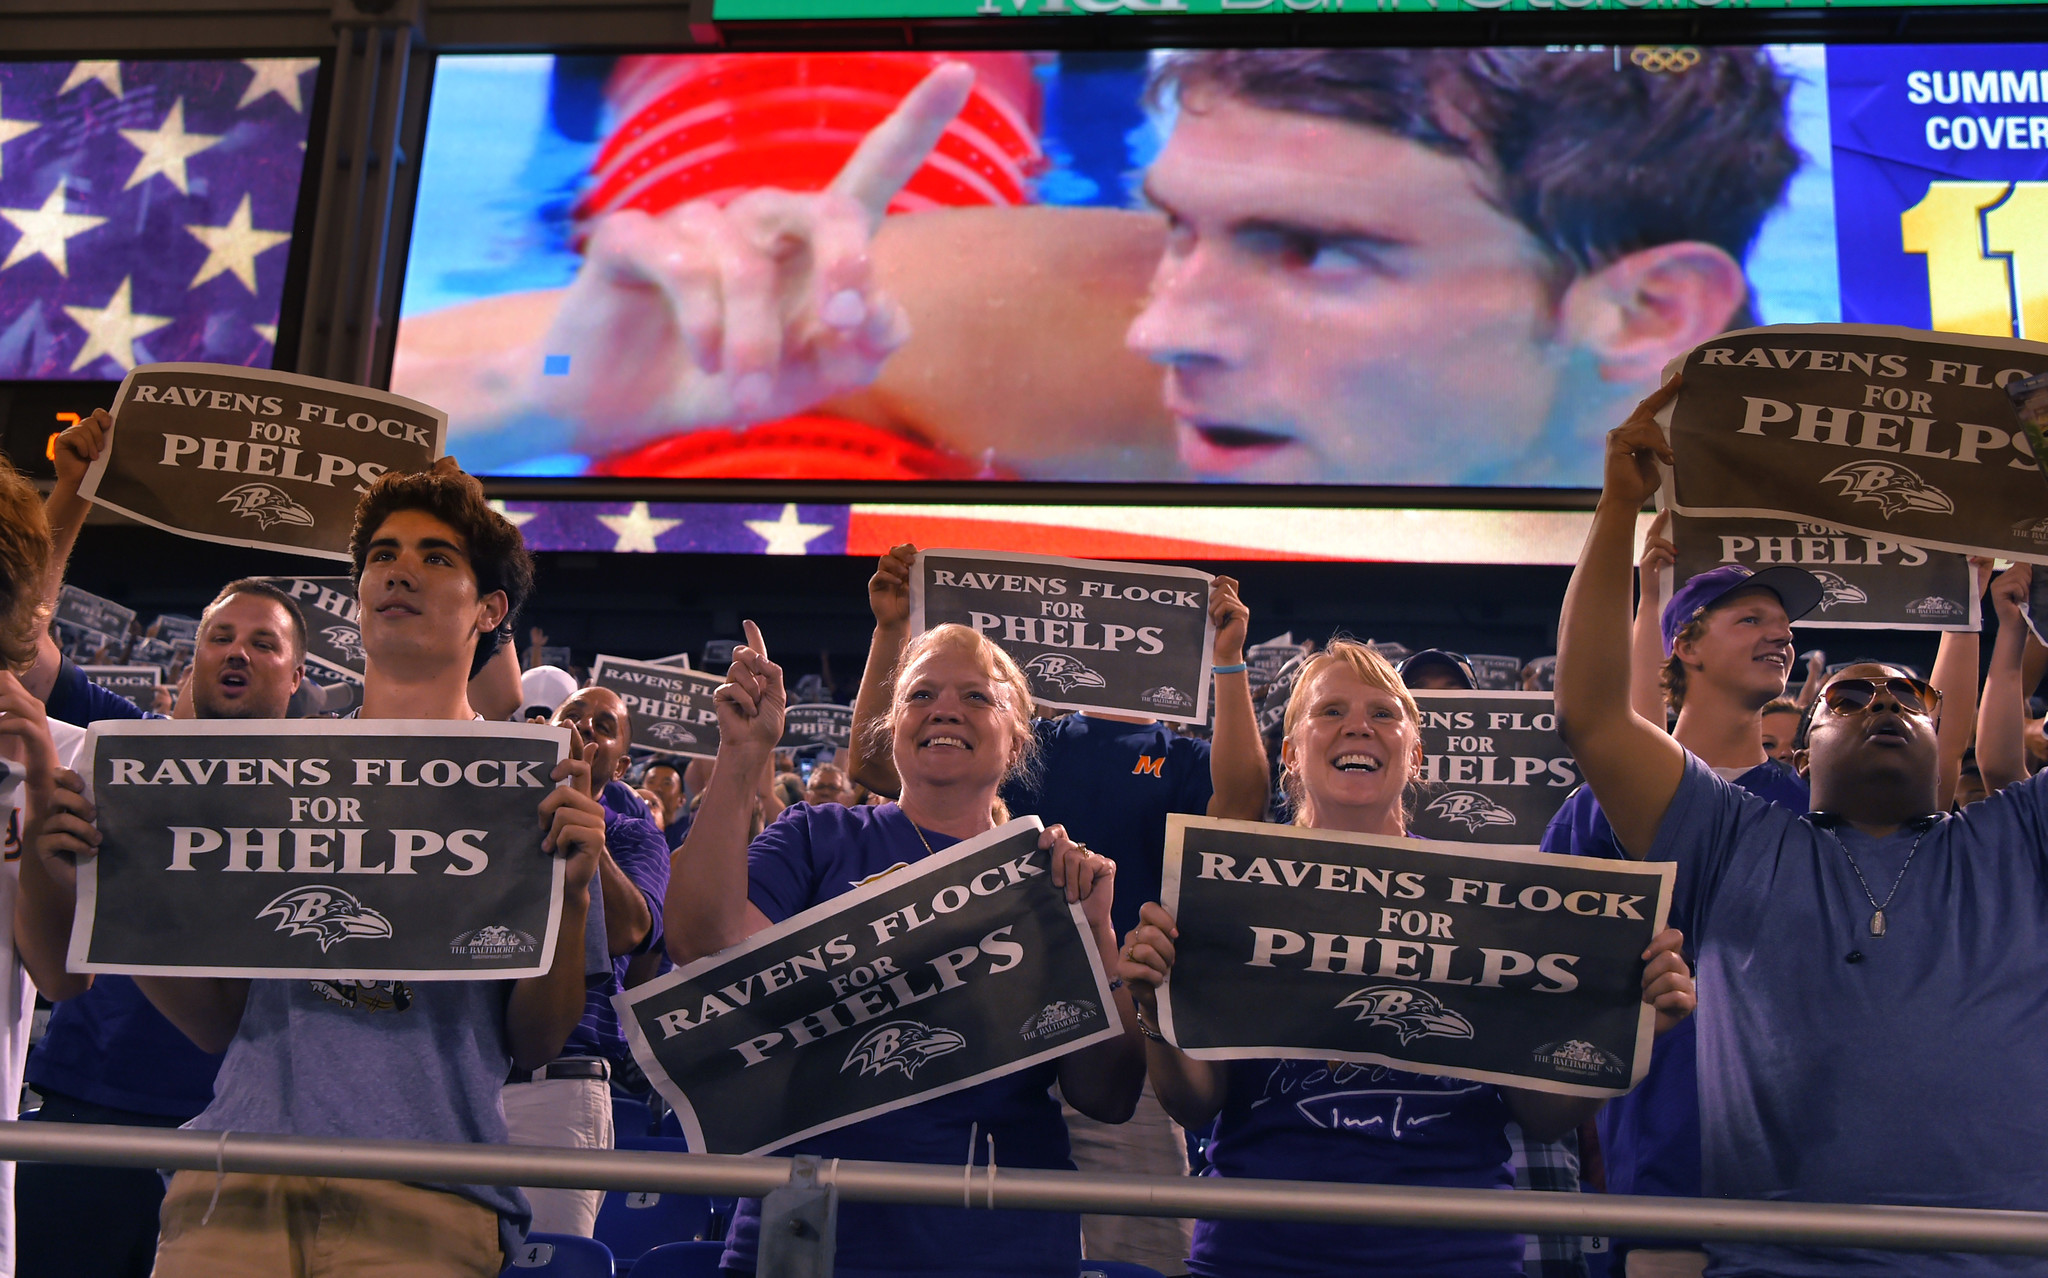 Bal-ravens-fans-watch-phelps-win-and-phelps-keeps-tabs-on-the-ravens-20160811